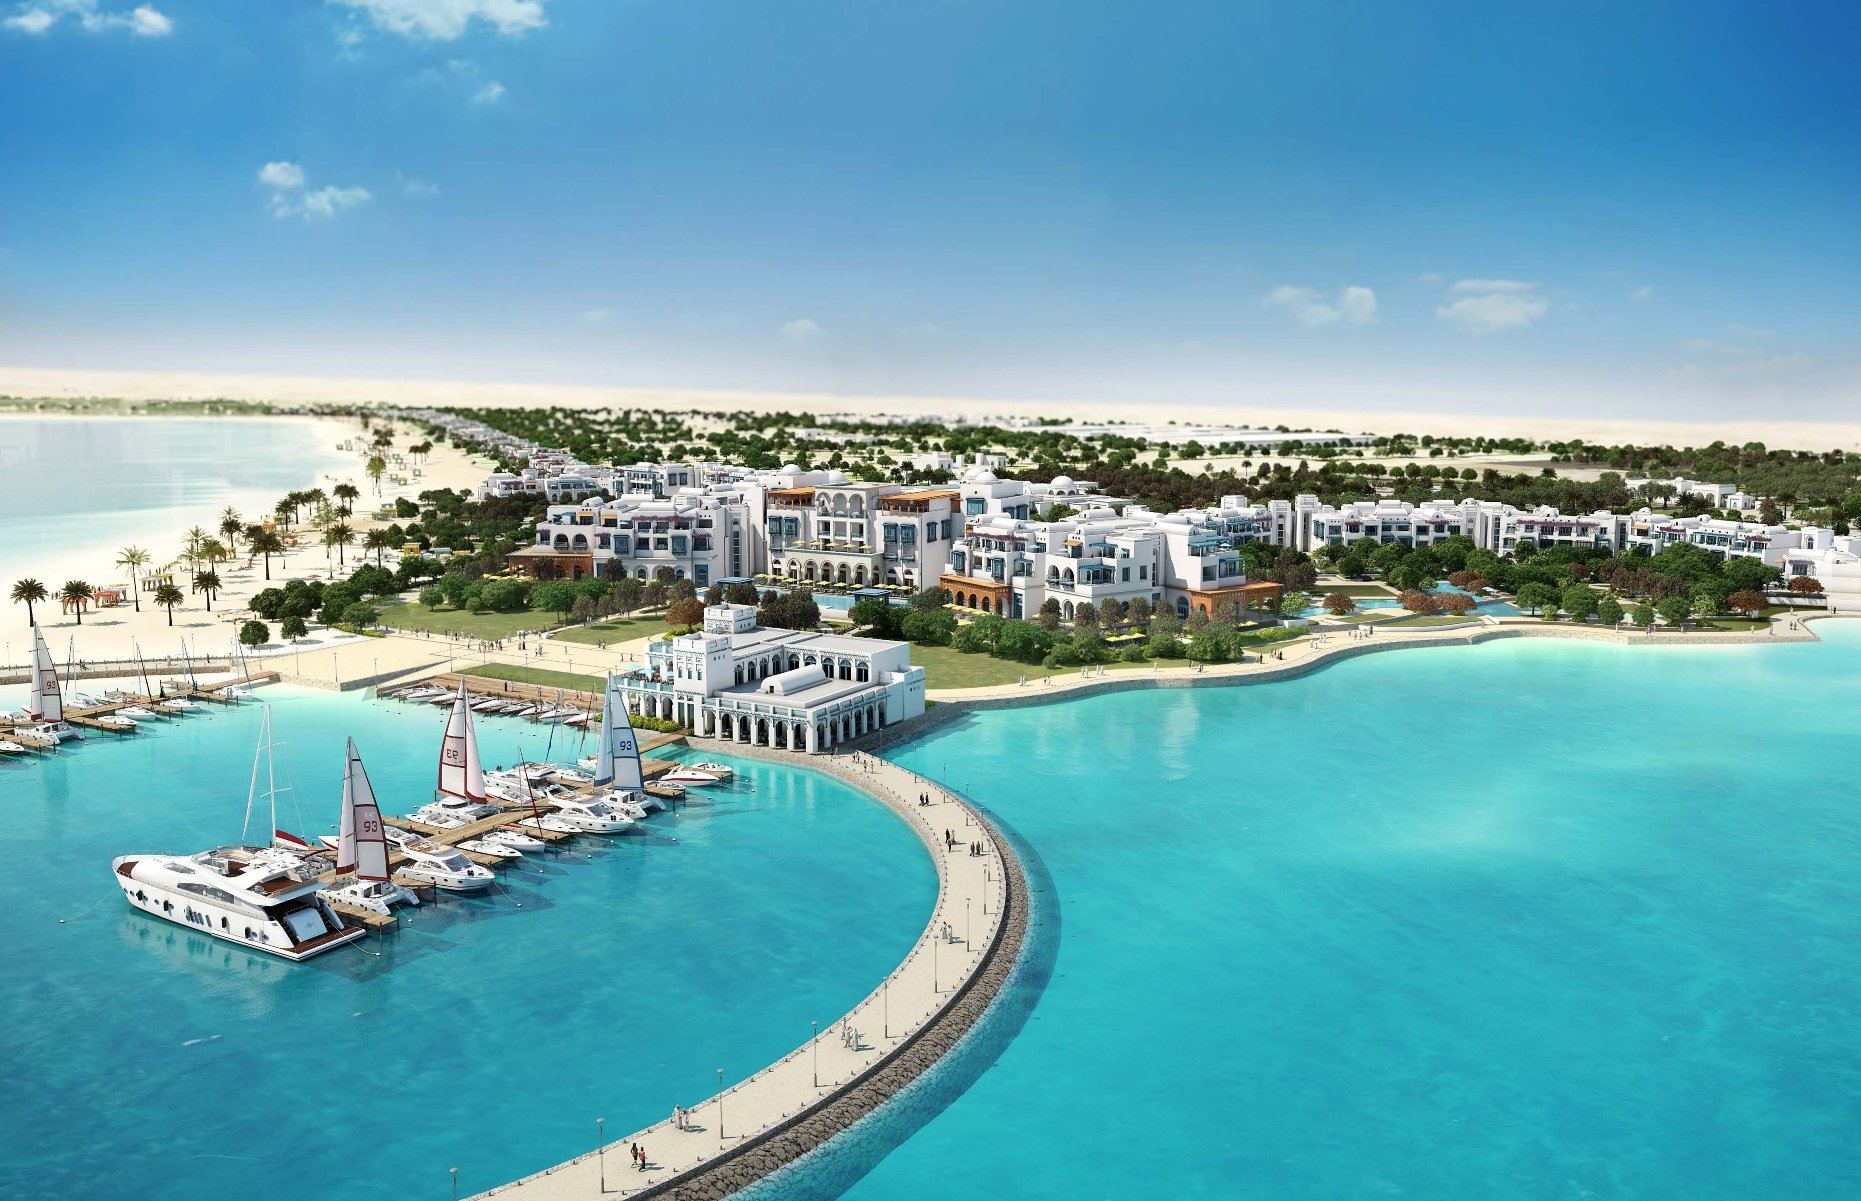 Hilton To Develop Largest Resort In The Middle East